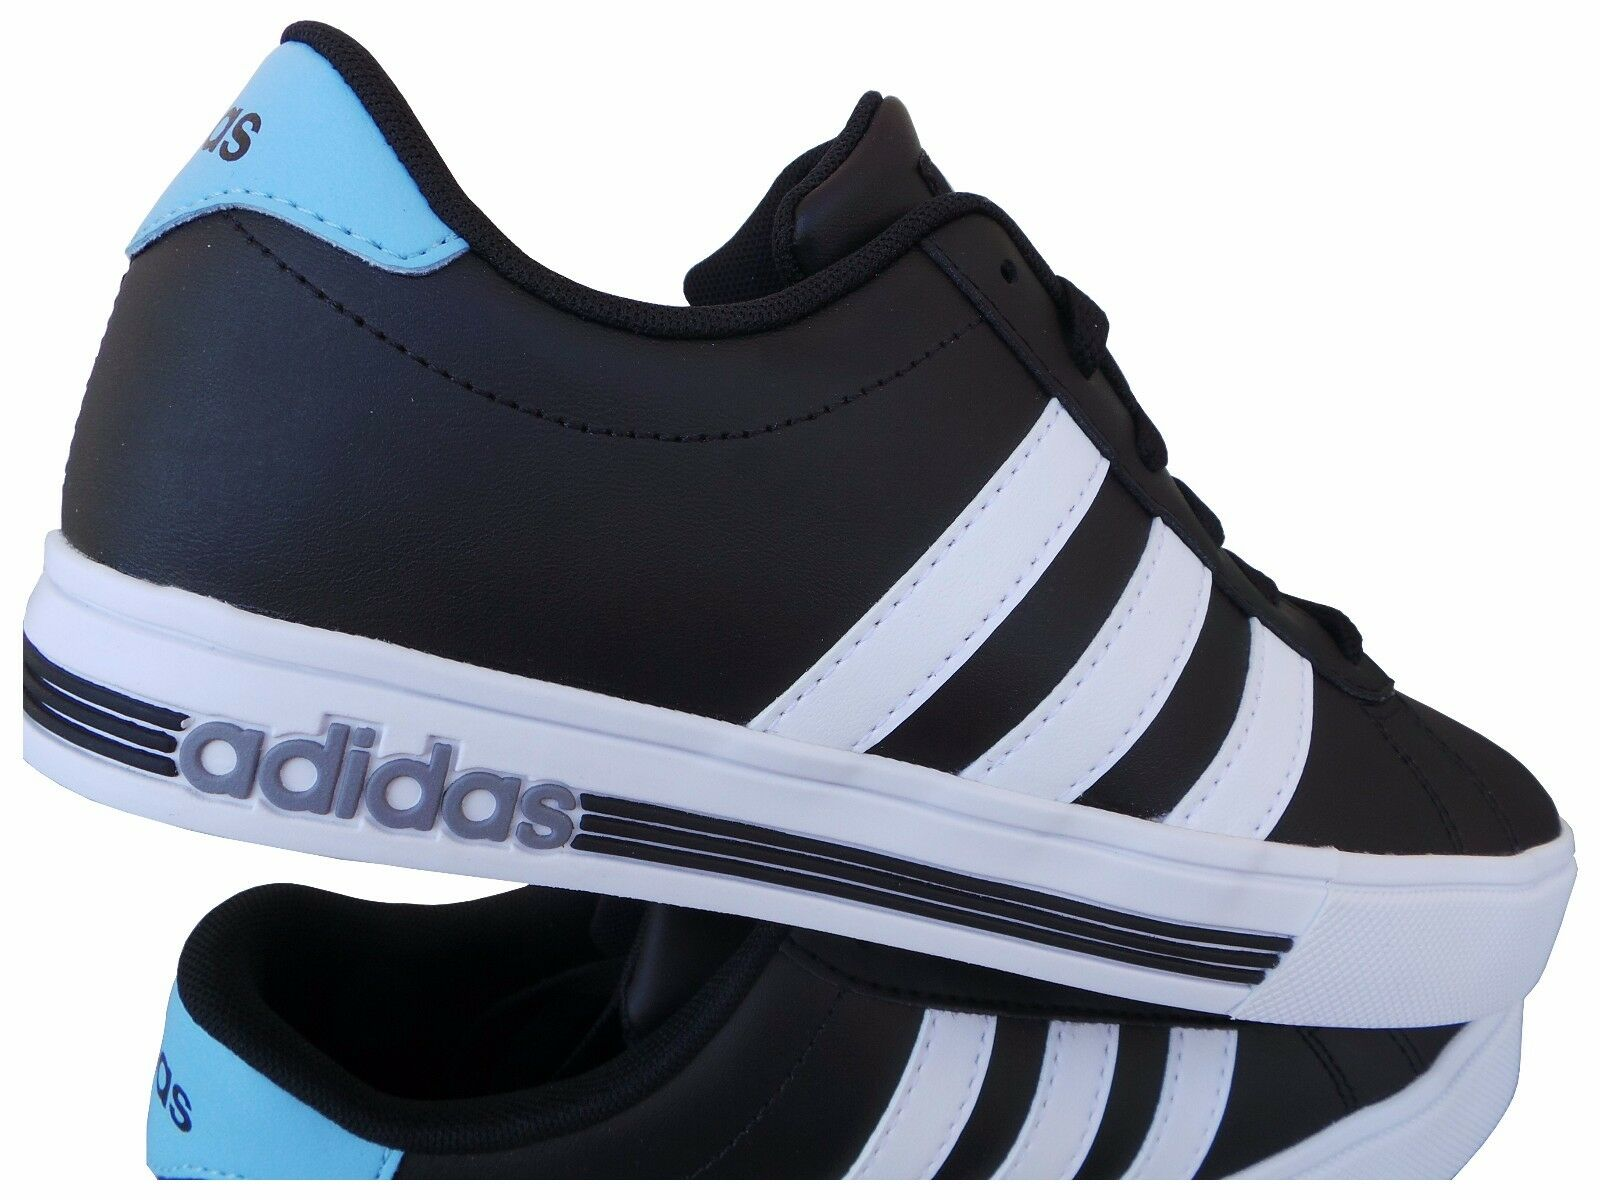 ADIDAS DAILY TEAM SNEAKERS SCHUH black WEISS CLOUDFOAM GR 40 41 1 3